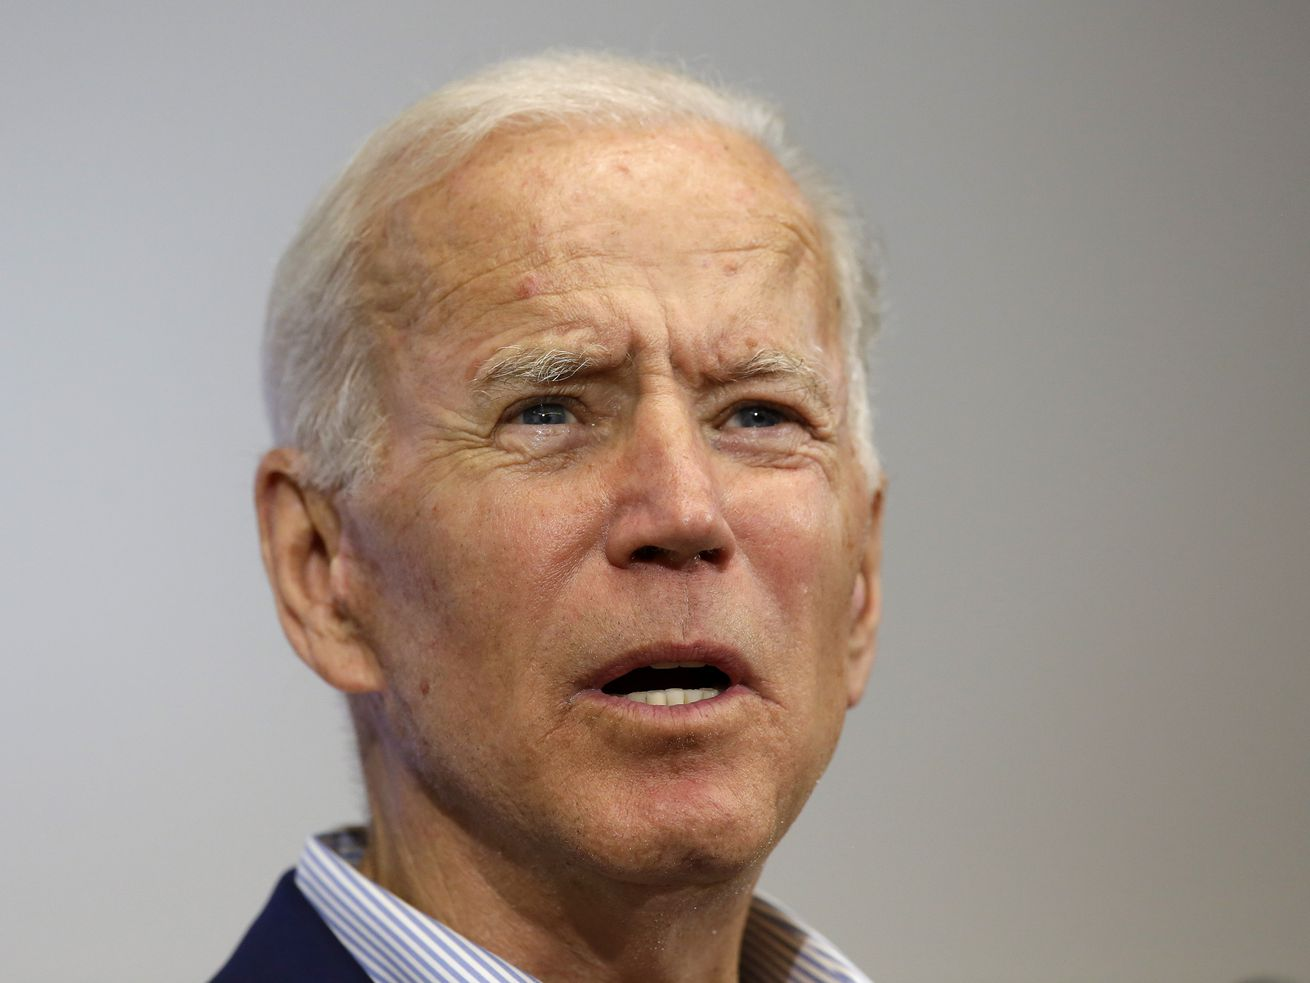 Former vice president and 2020 Democratic presidential candidate Joe Biden speaks during a campaign event on June 11, 2019, in Davenport, Iowa.